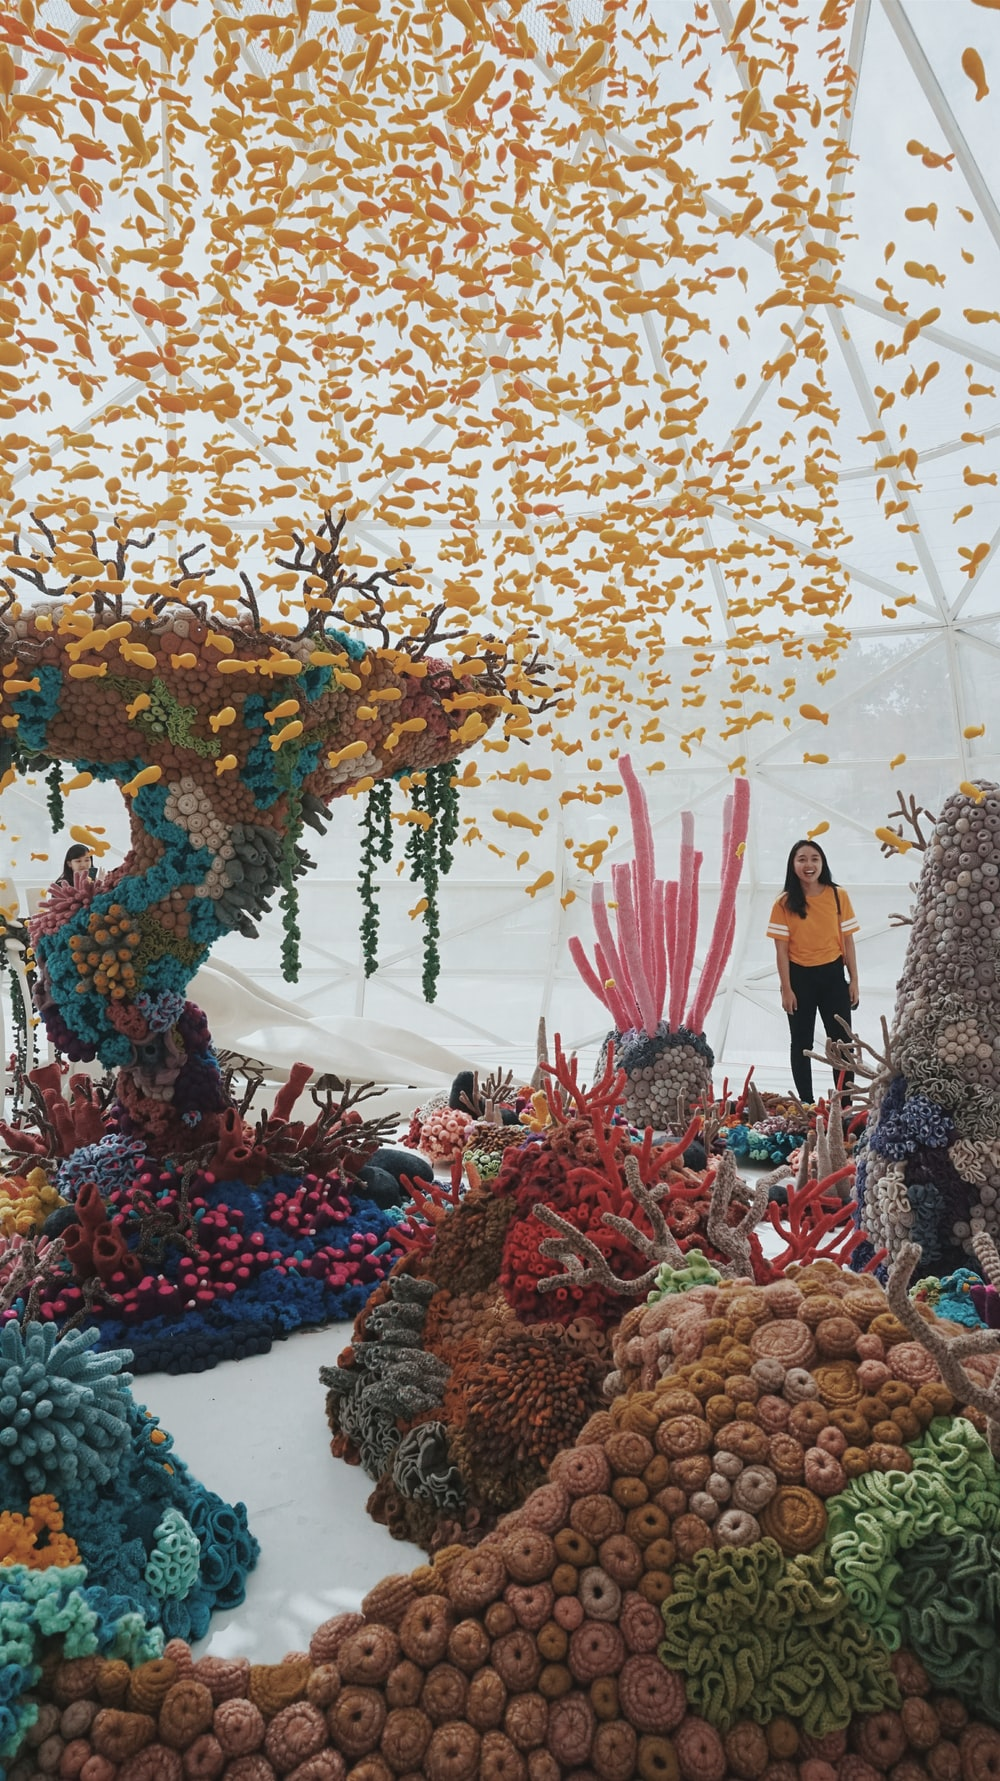 person standing on coral design